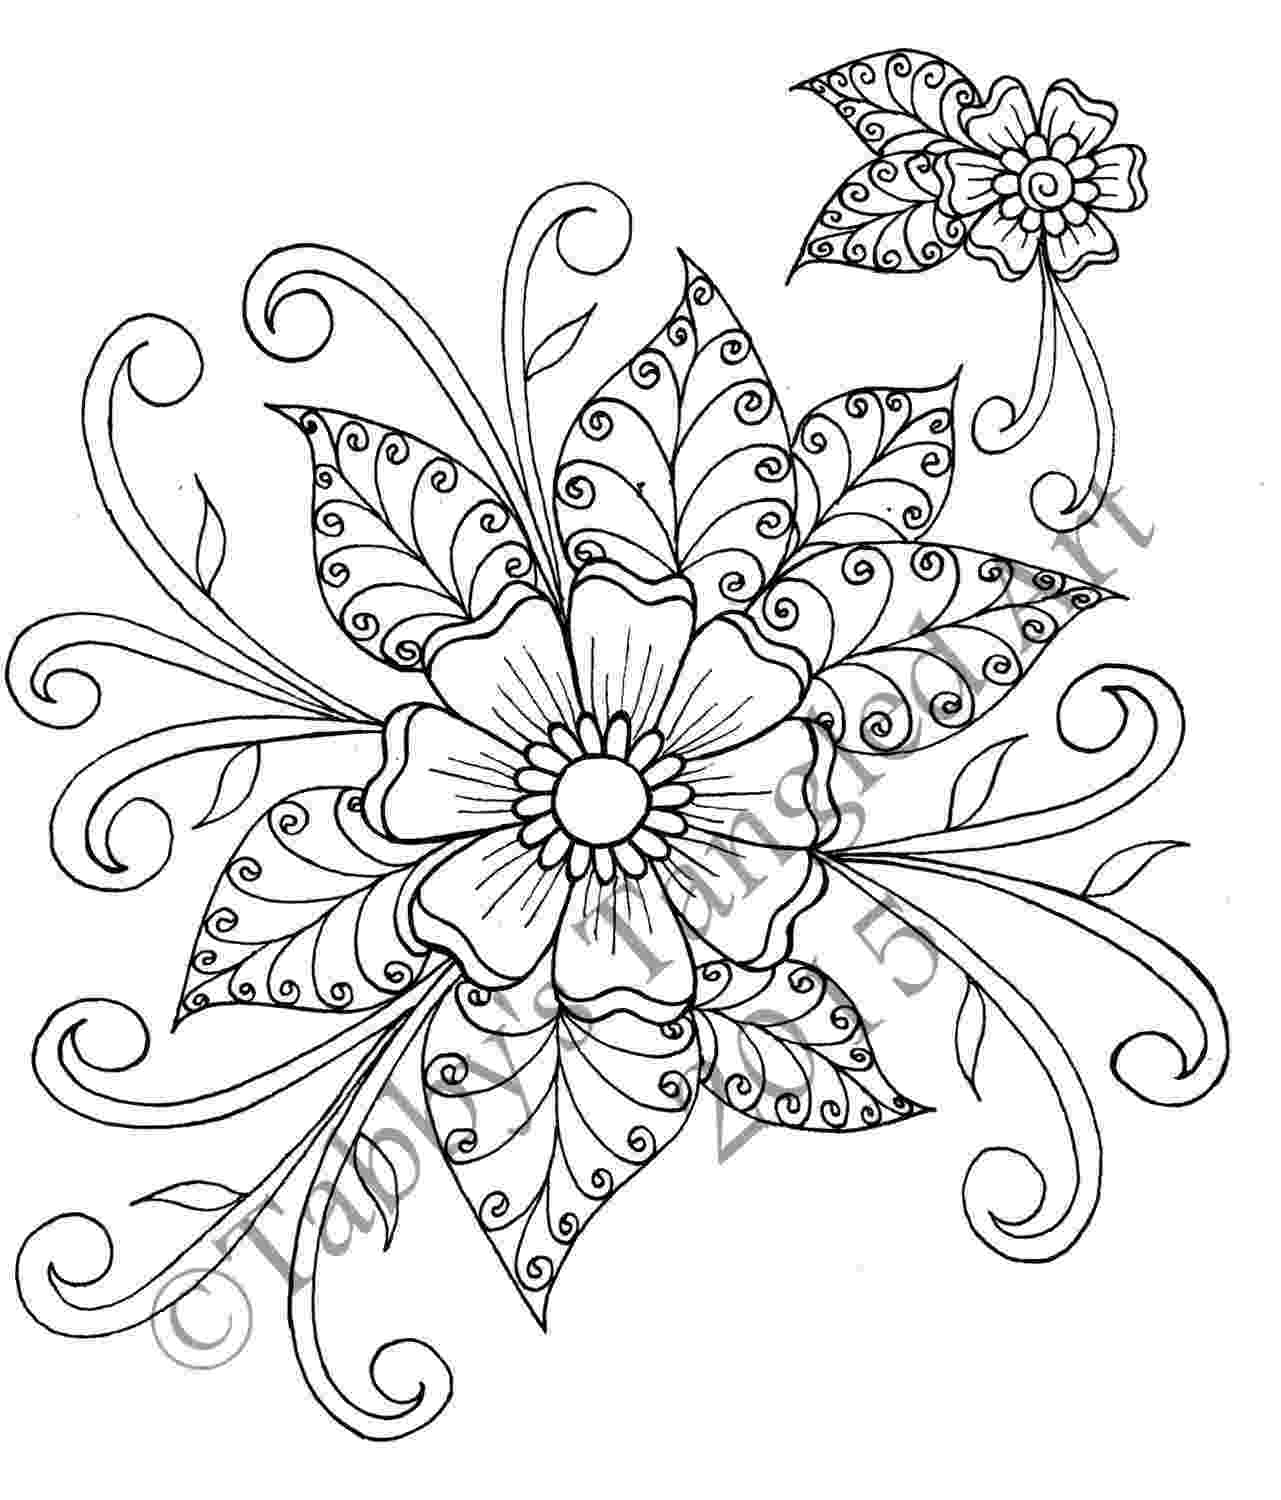 flower patterns coloring book coloring books for grown ups calvin was right flower patterns coloring book